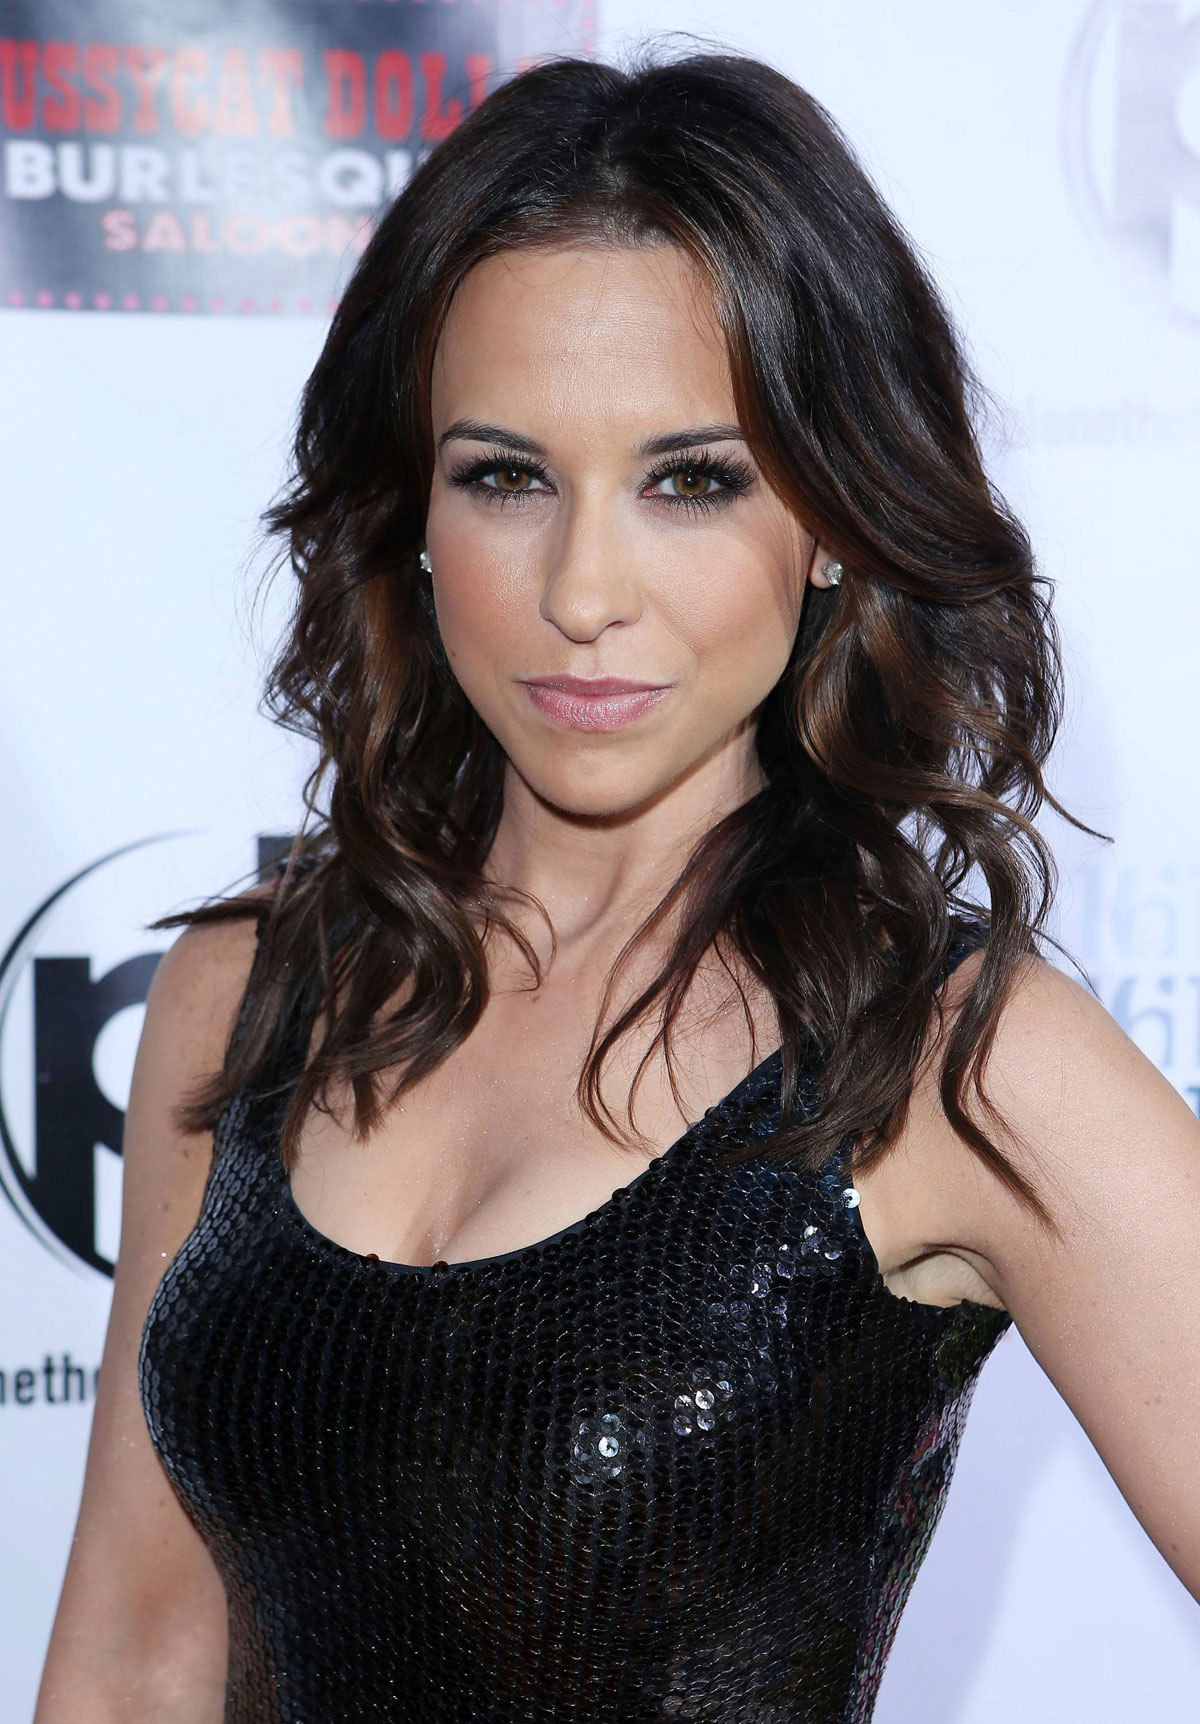 Mini Las Vegas >> Lacey Chabert In a Hot Dress at 30th Birthday Party-08 ...